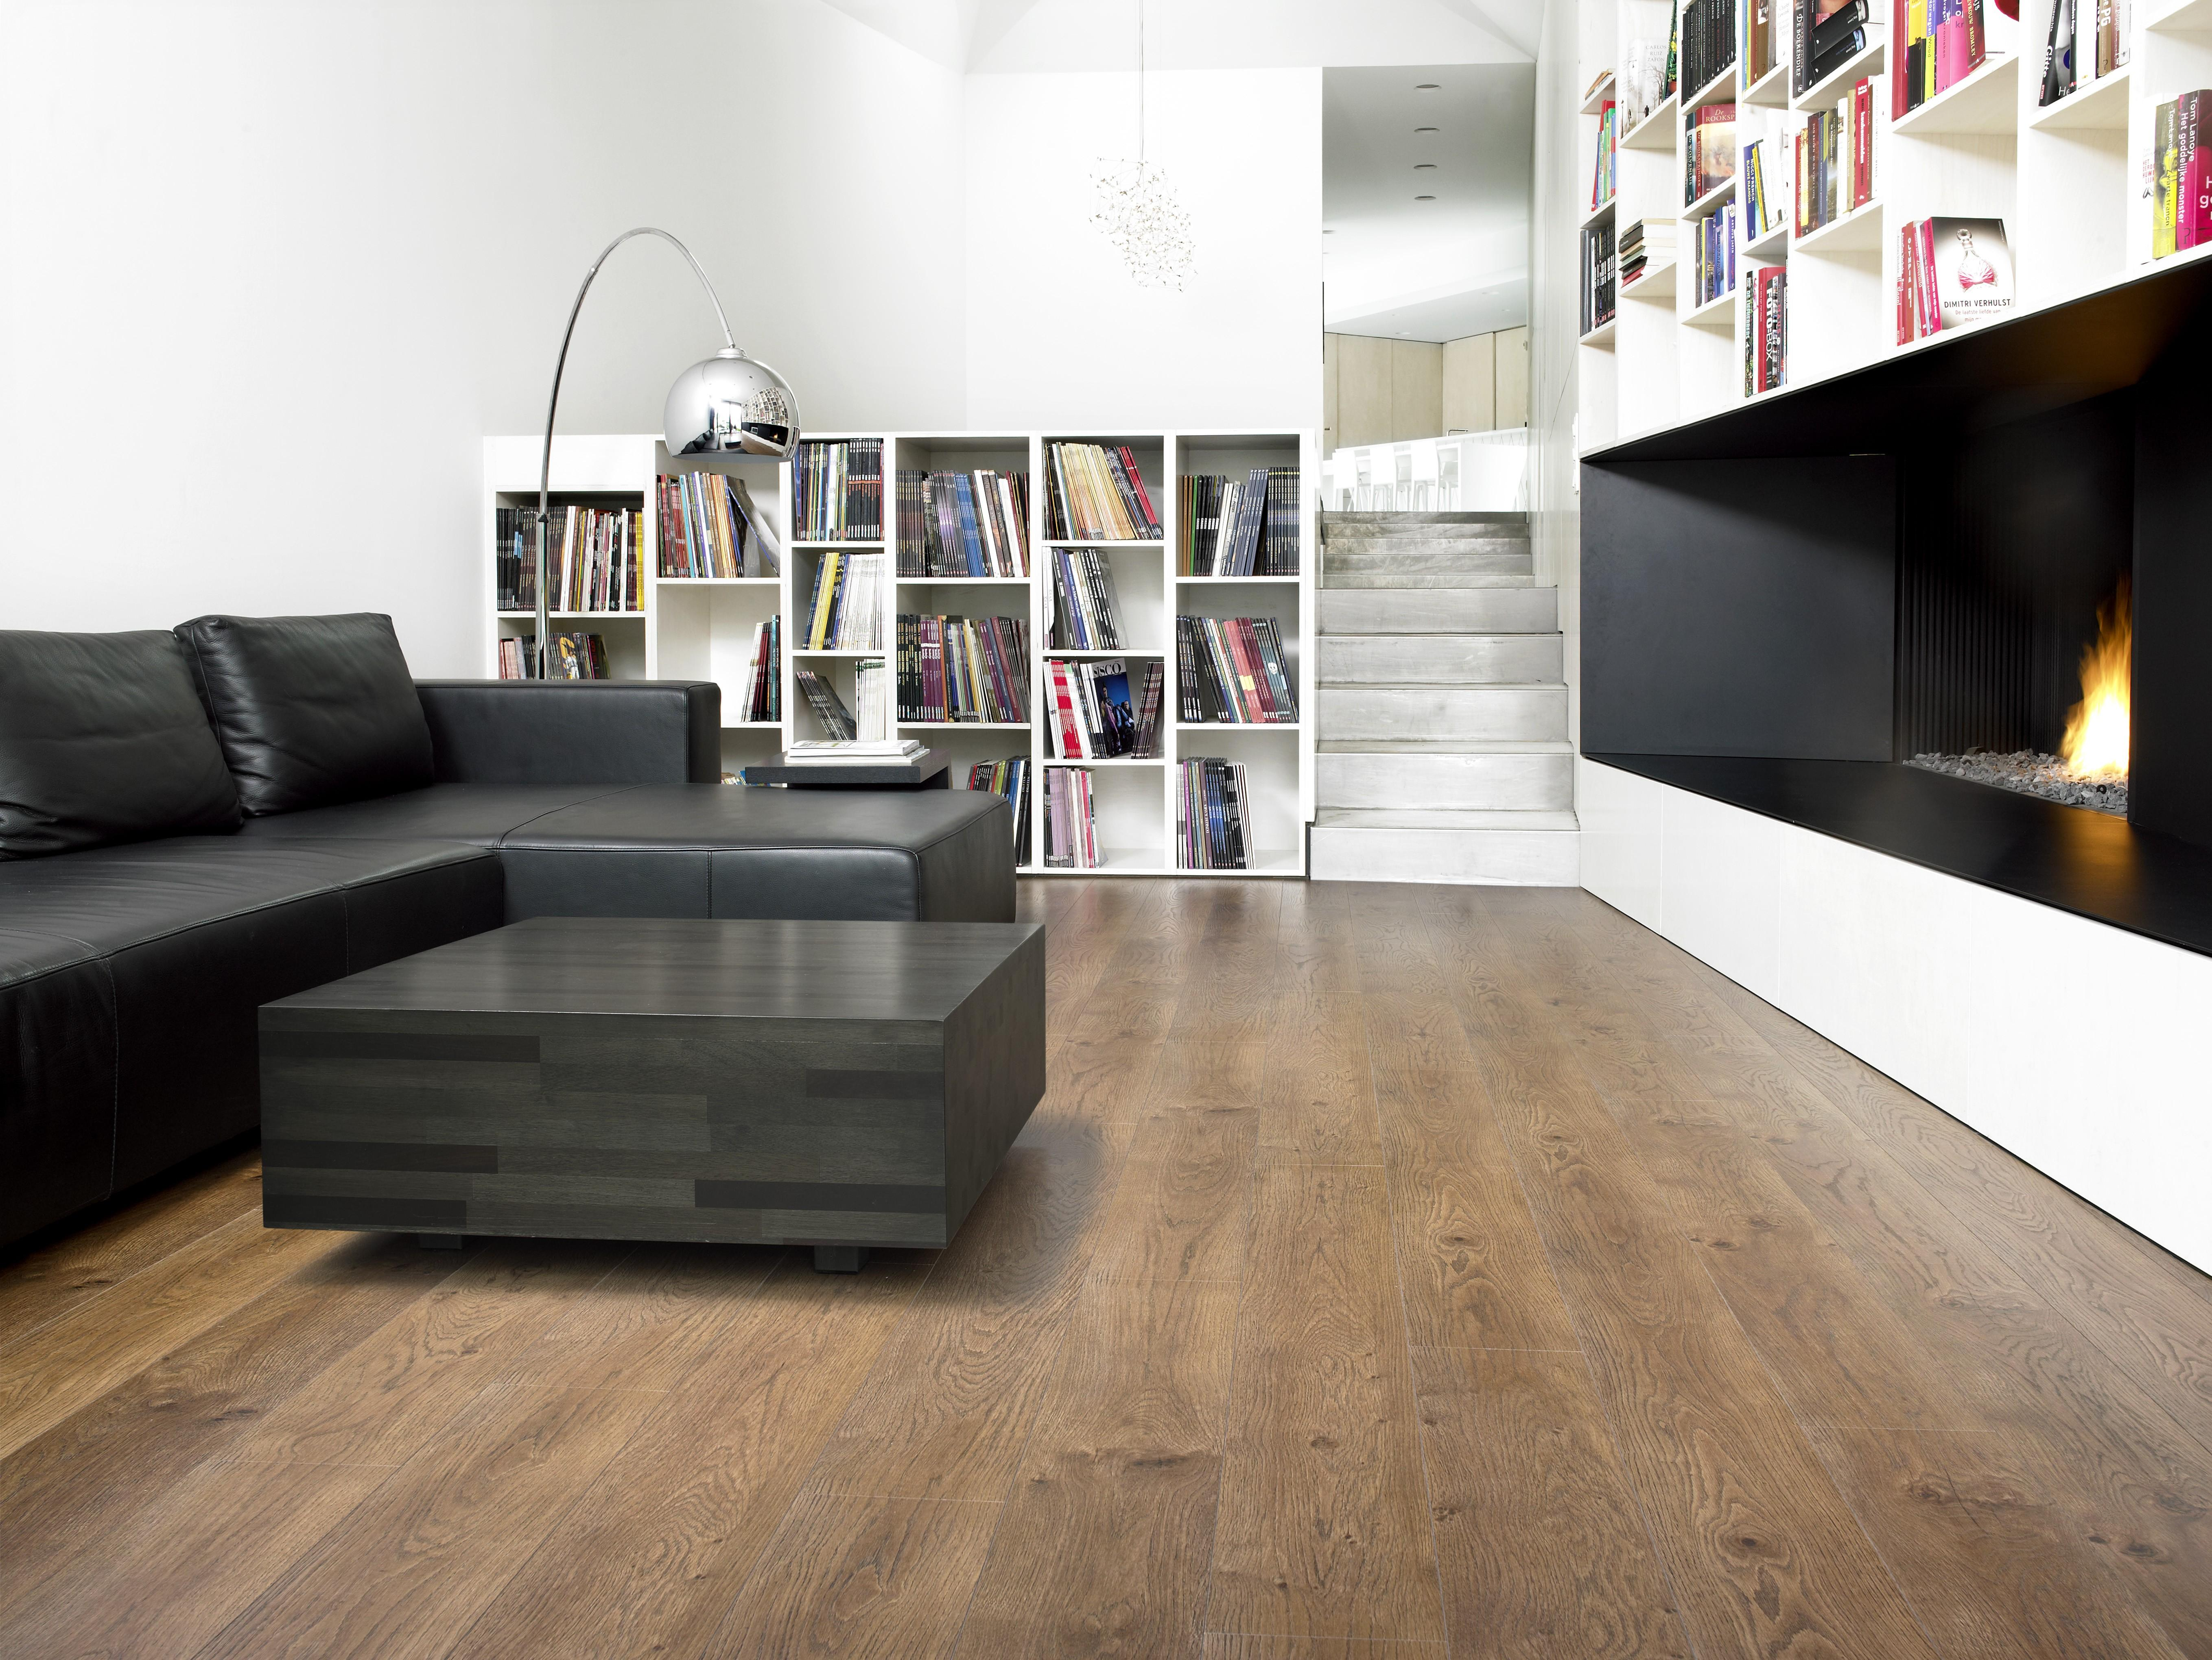 Alloc Laminate Flooring Features A Patented Aluminum Locking System That Simplifies Installation And Holds The Joints Firmly Together